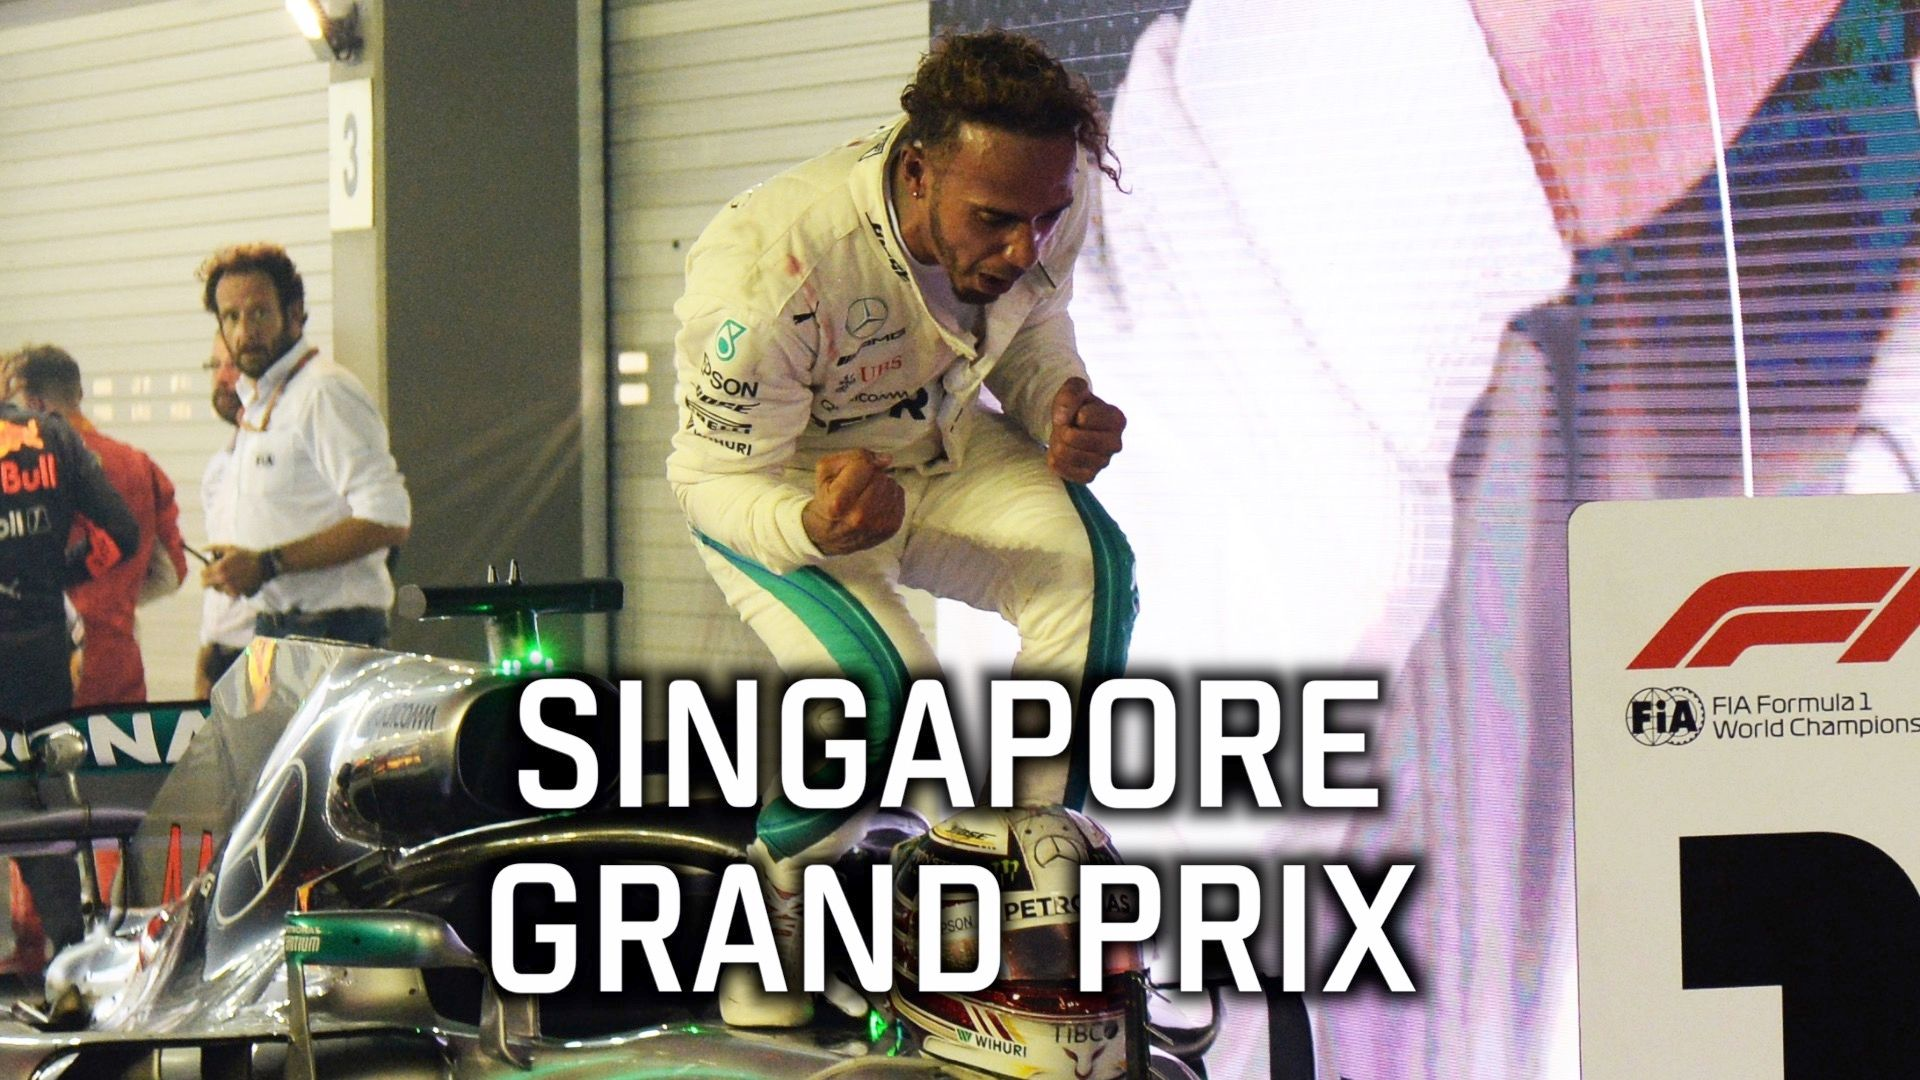 Social story of the Singapore Grand Prix